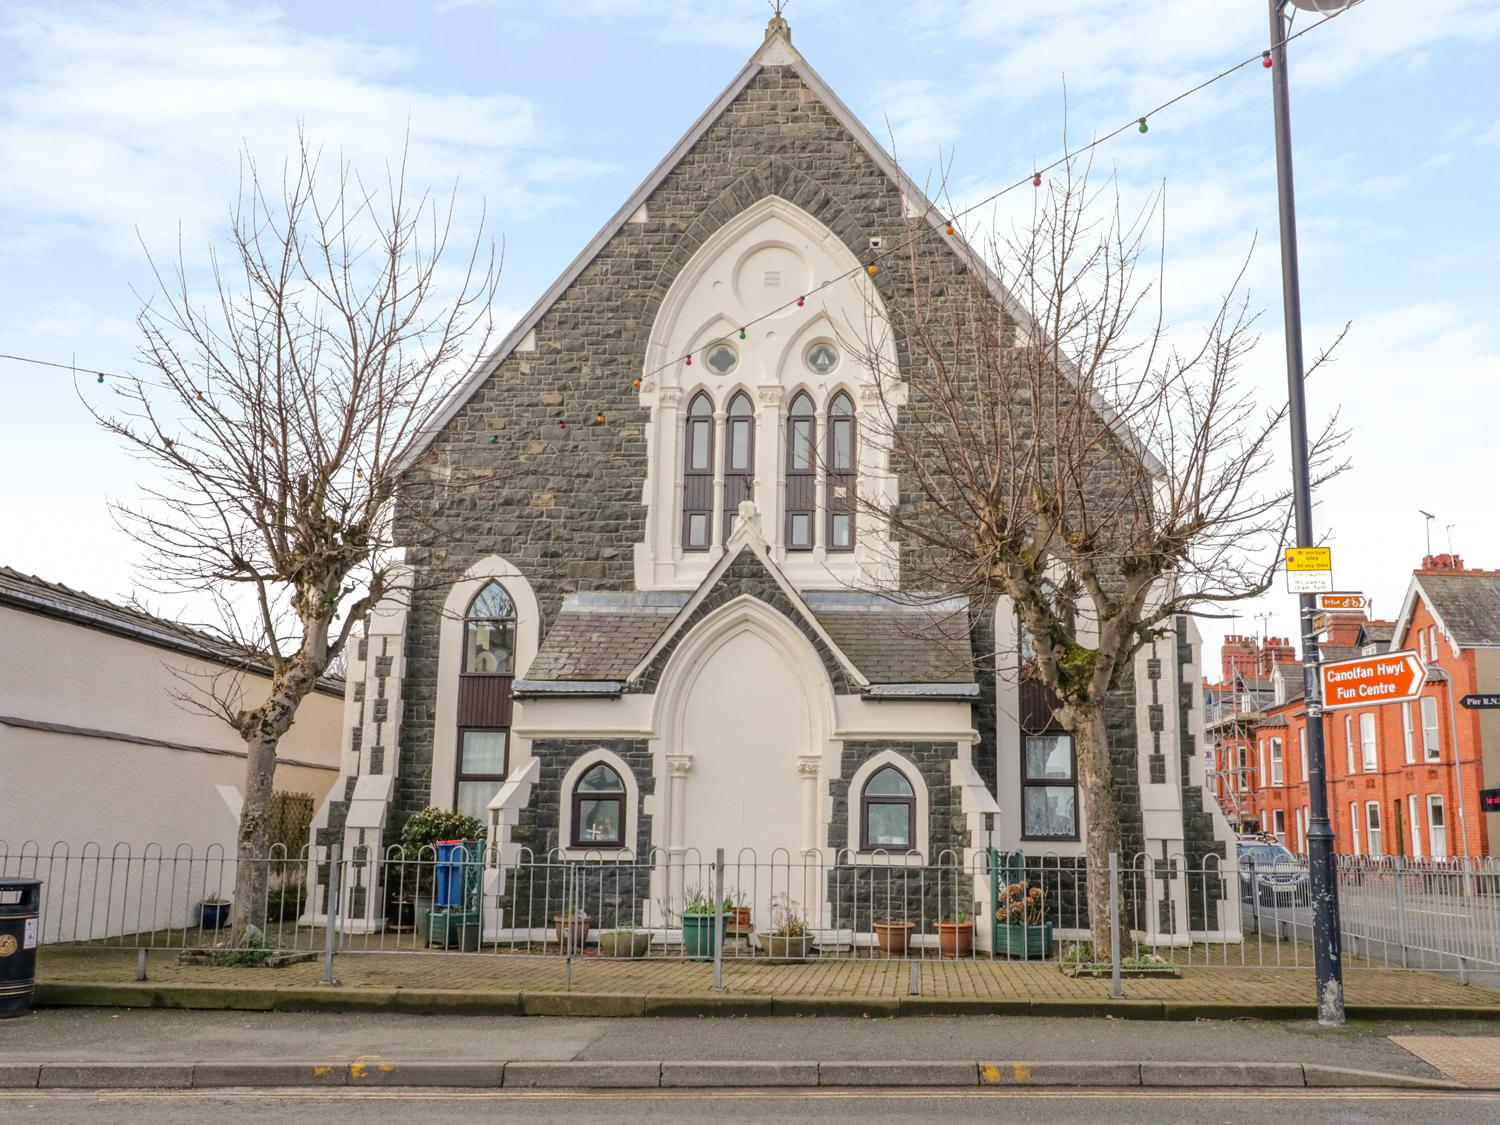 No 2 Presbyterian Church